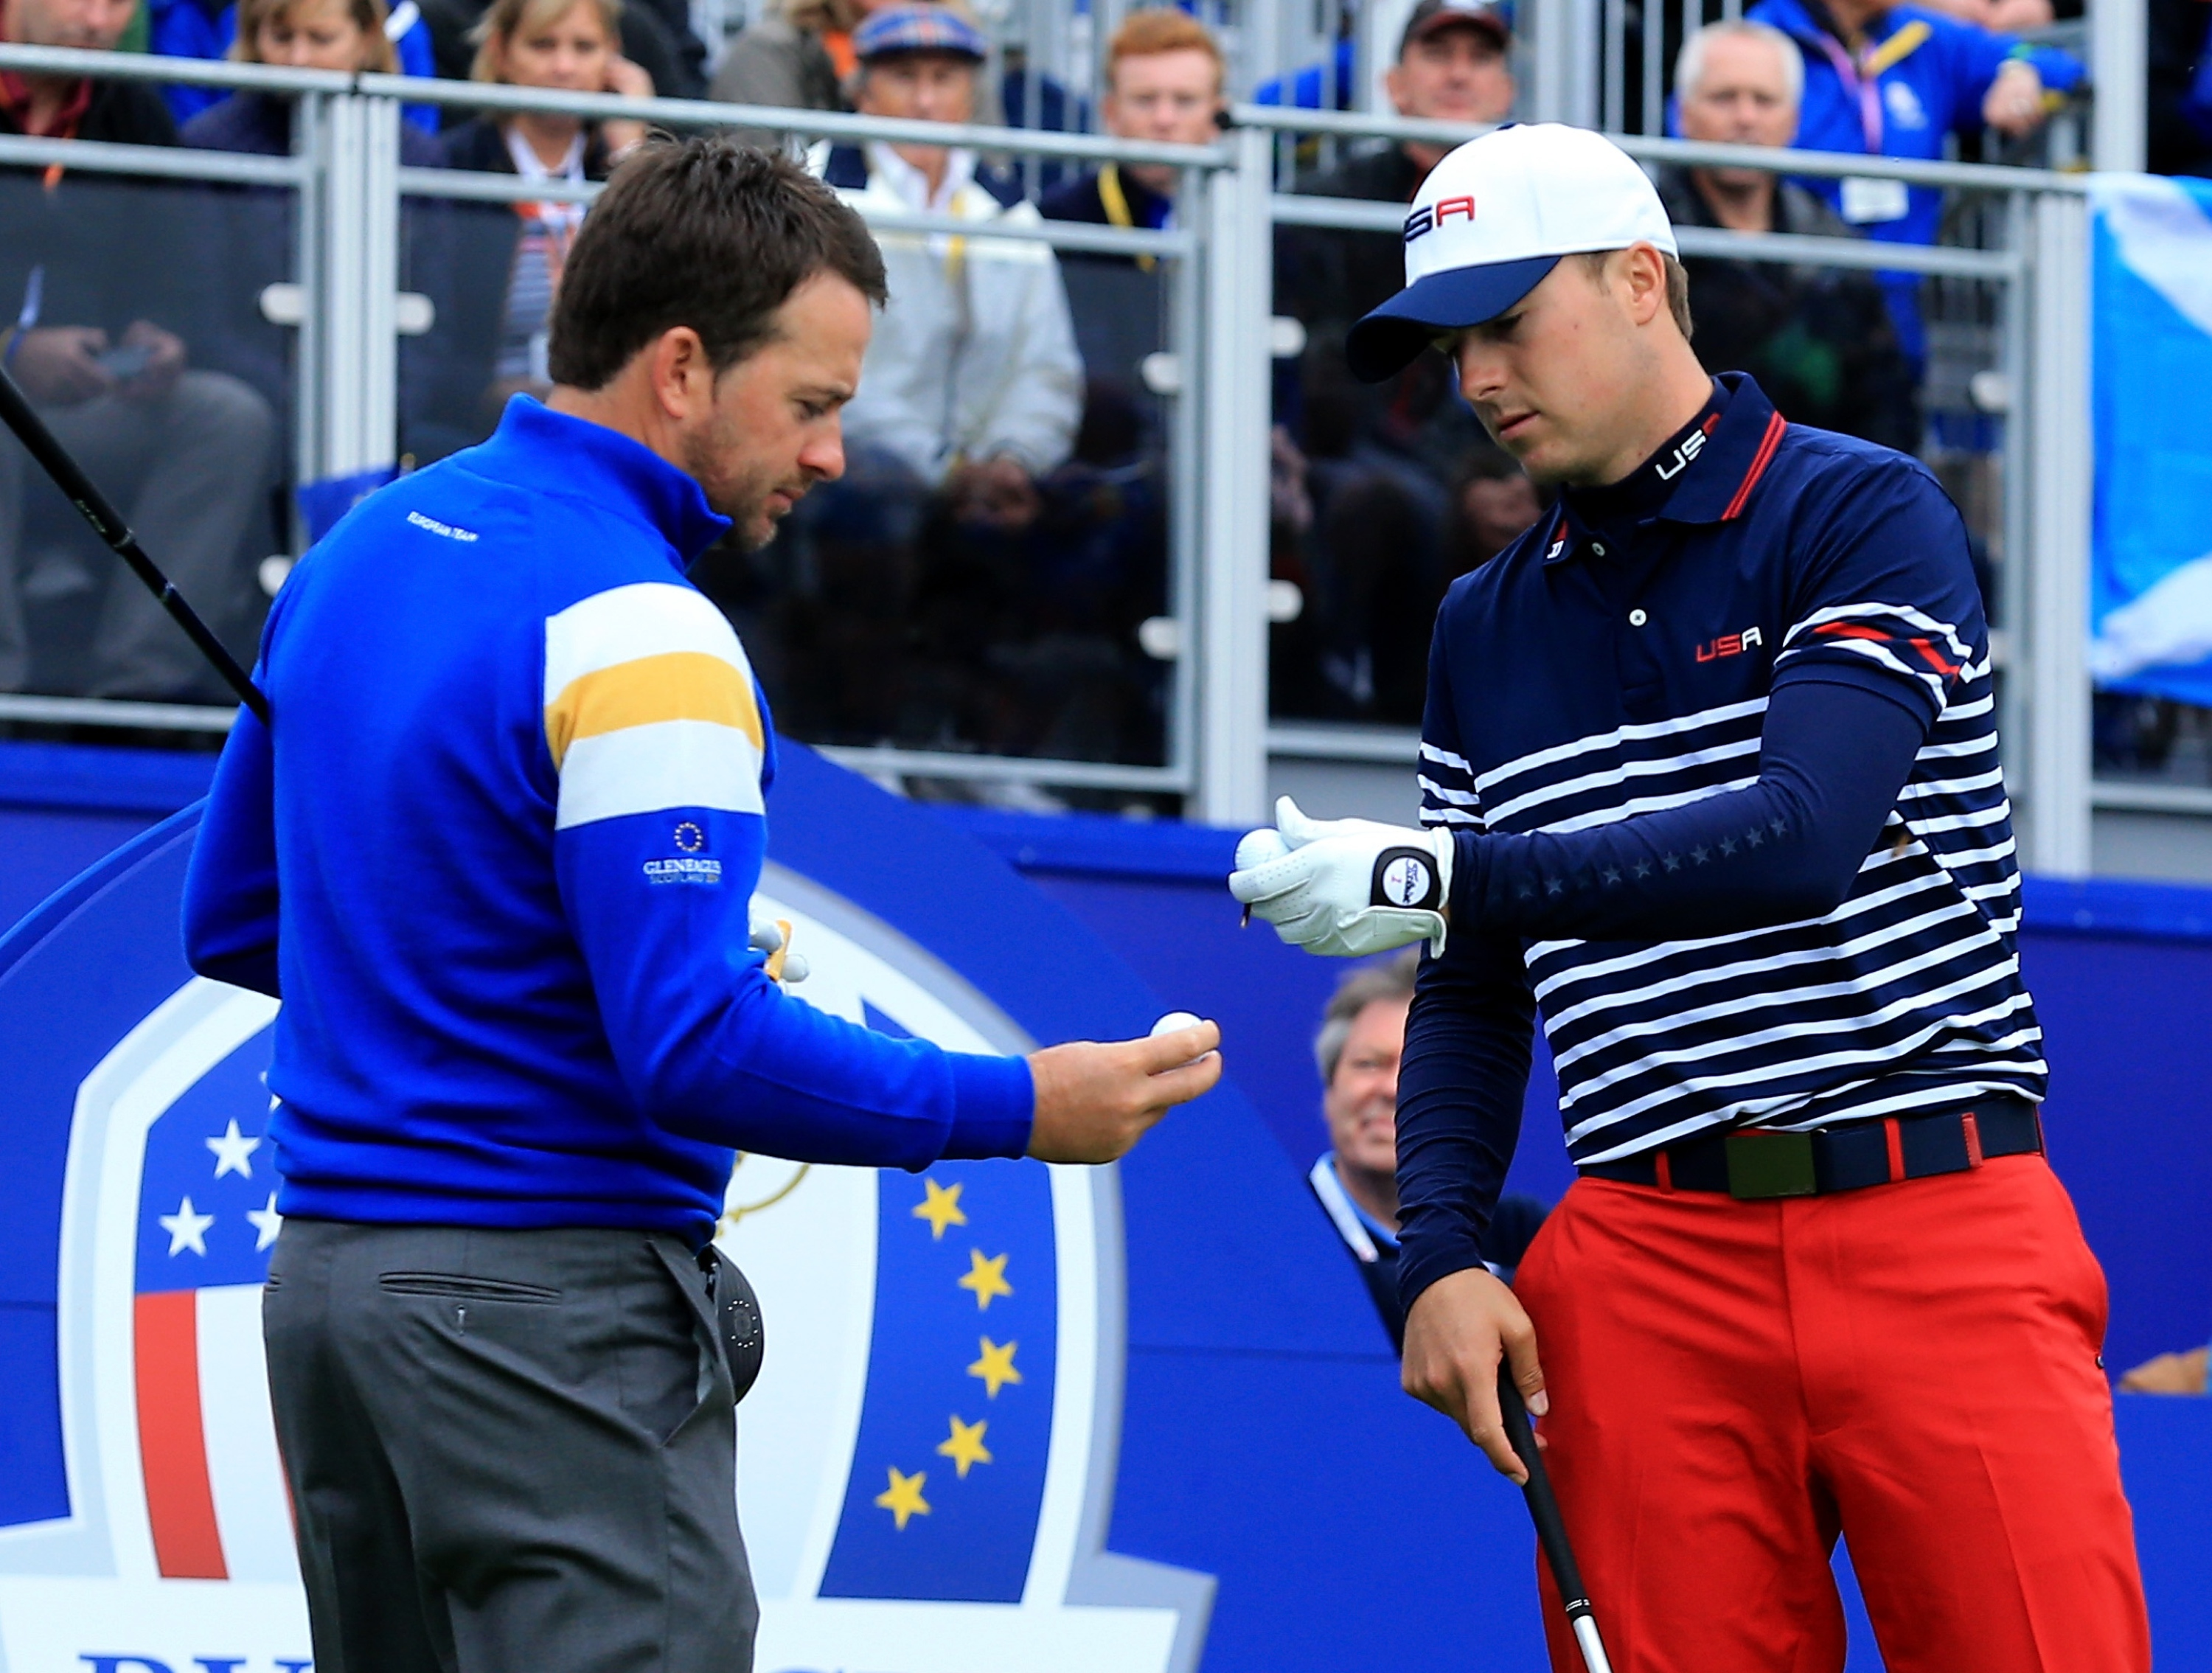 AUCHTERARDER, SCOTLAND - SEPTEMBER 28: Graeme McDowell of Europe and Jordan Spieth of the United States on the 1st tee during the Singles Matches of the 2014 Ryder Cup on the PGA Centenary course at the Gleneagles Hotel on September 28, 2014 in Auchterarder, Scotland. (Photo by David Cannon/Getty Images)